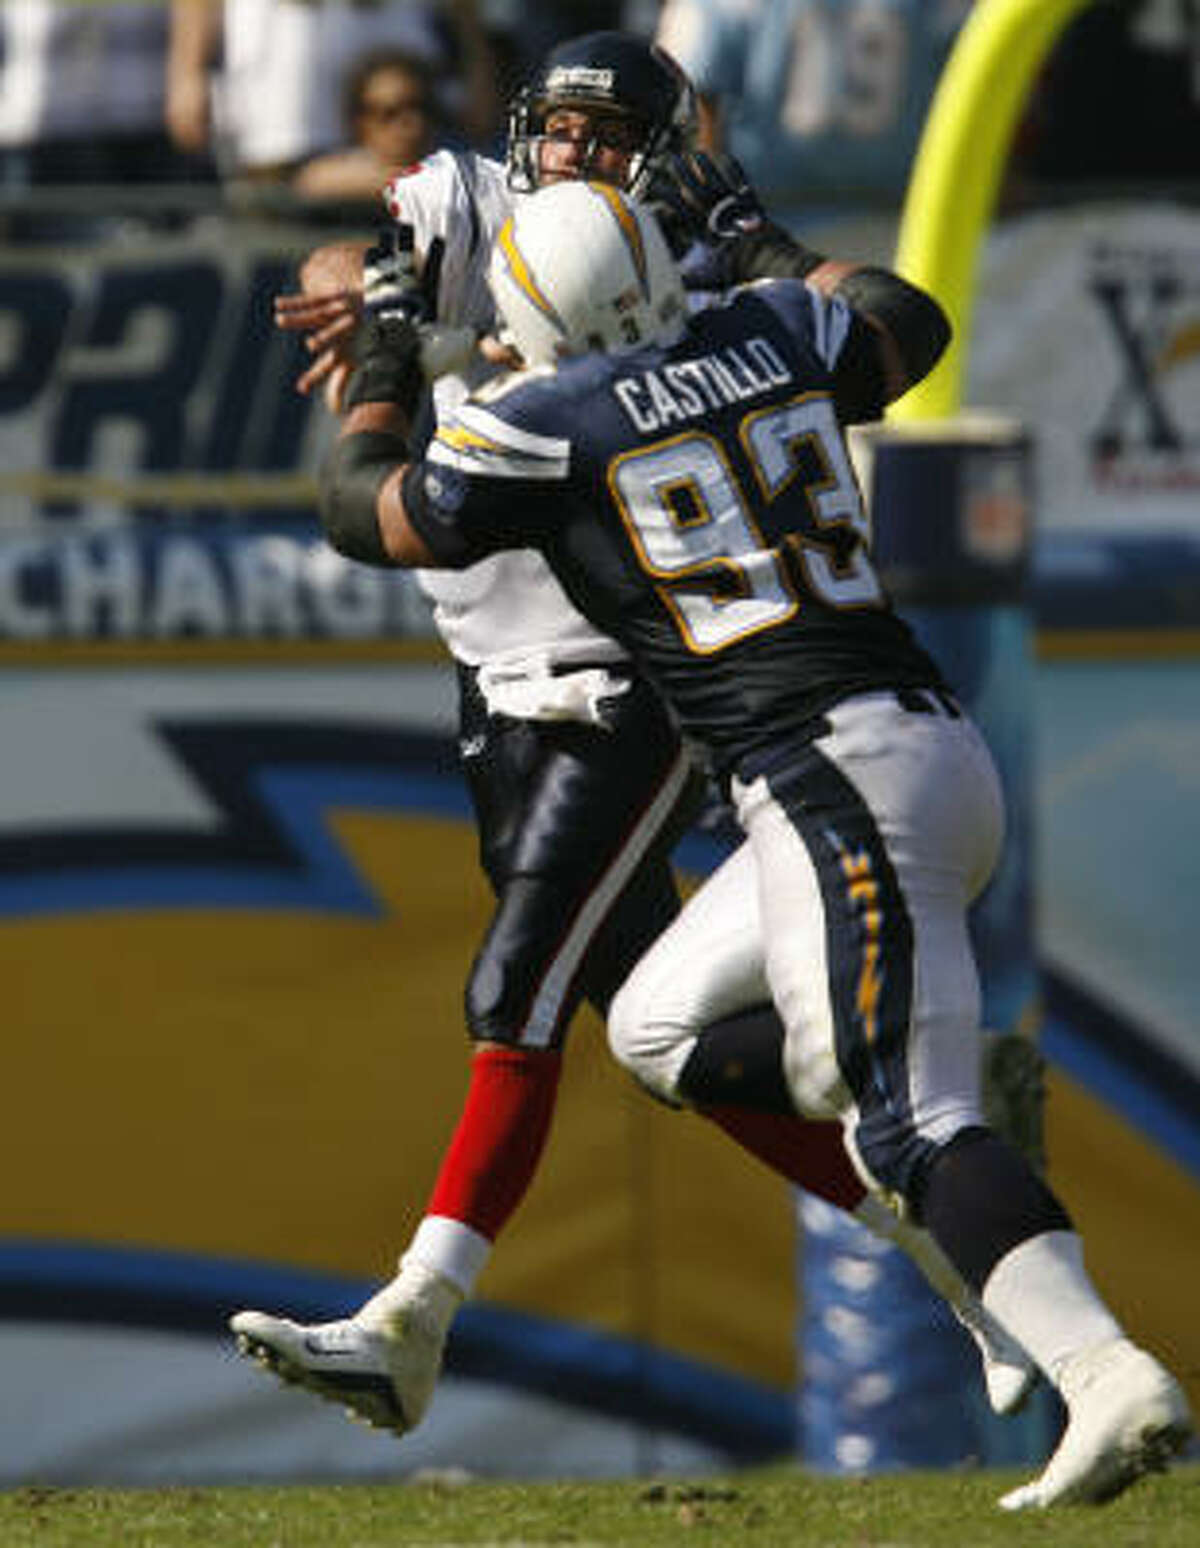 Oct. 28, 2007 | Texans vs. Chargers: After Schaub left the game with an injury, Rosenfels threw two interceptions against the Chargers in a 35-10 loss.